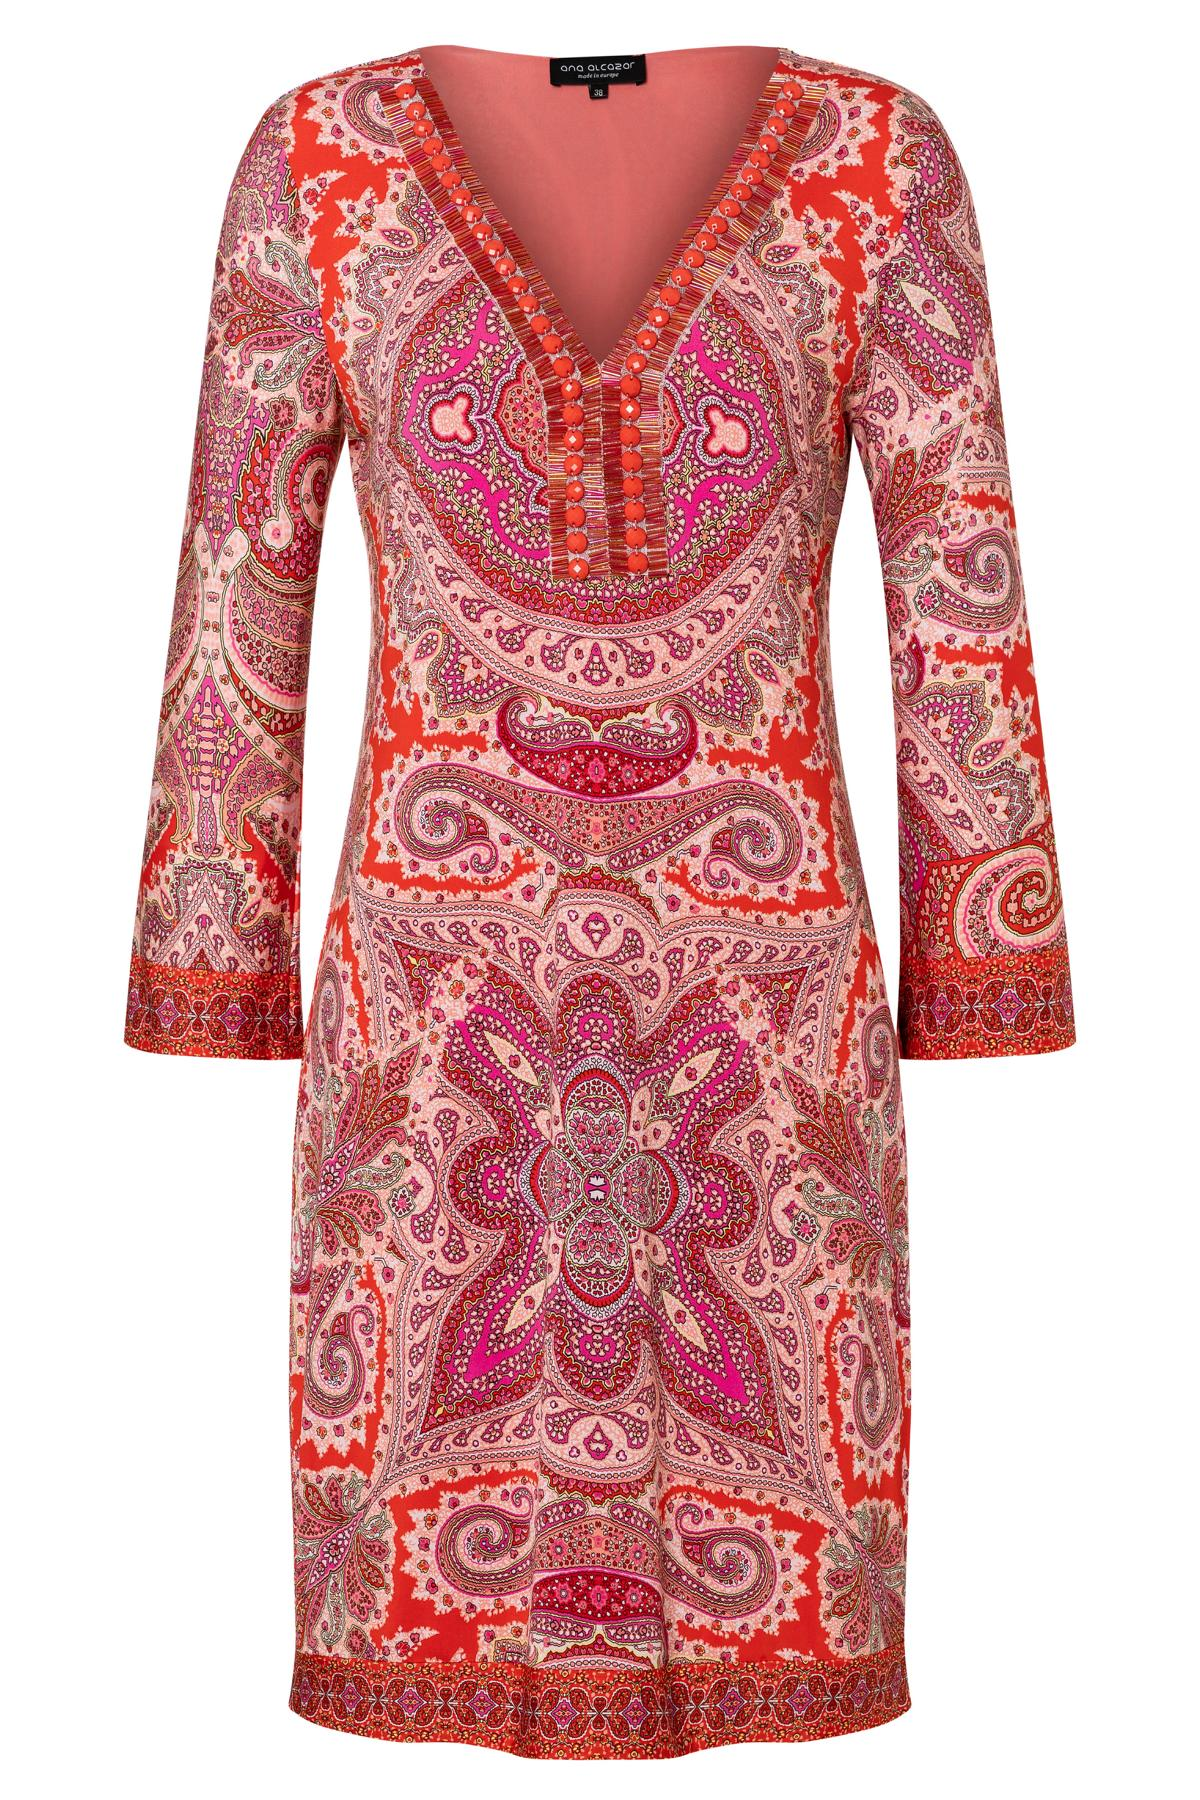 Kleid Mit Paisley Muster Modepark Rother Online Shop 3